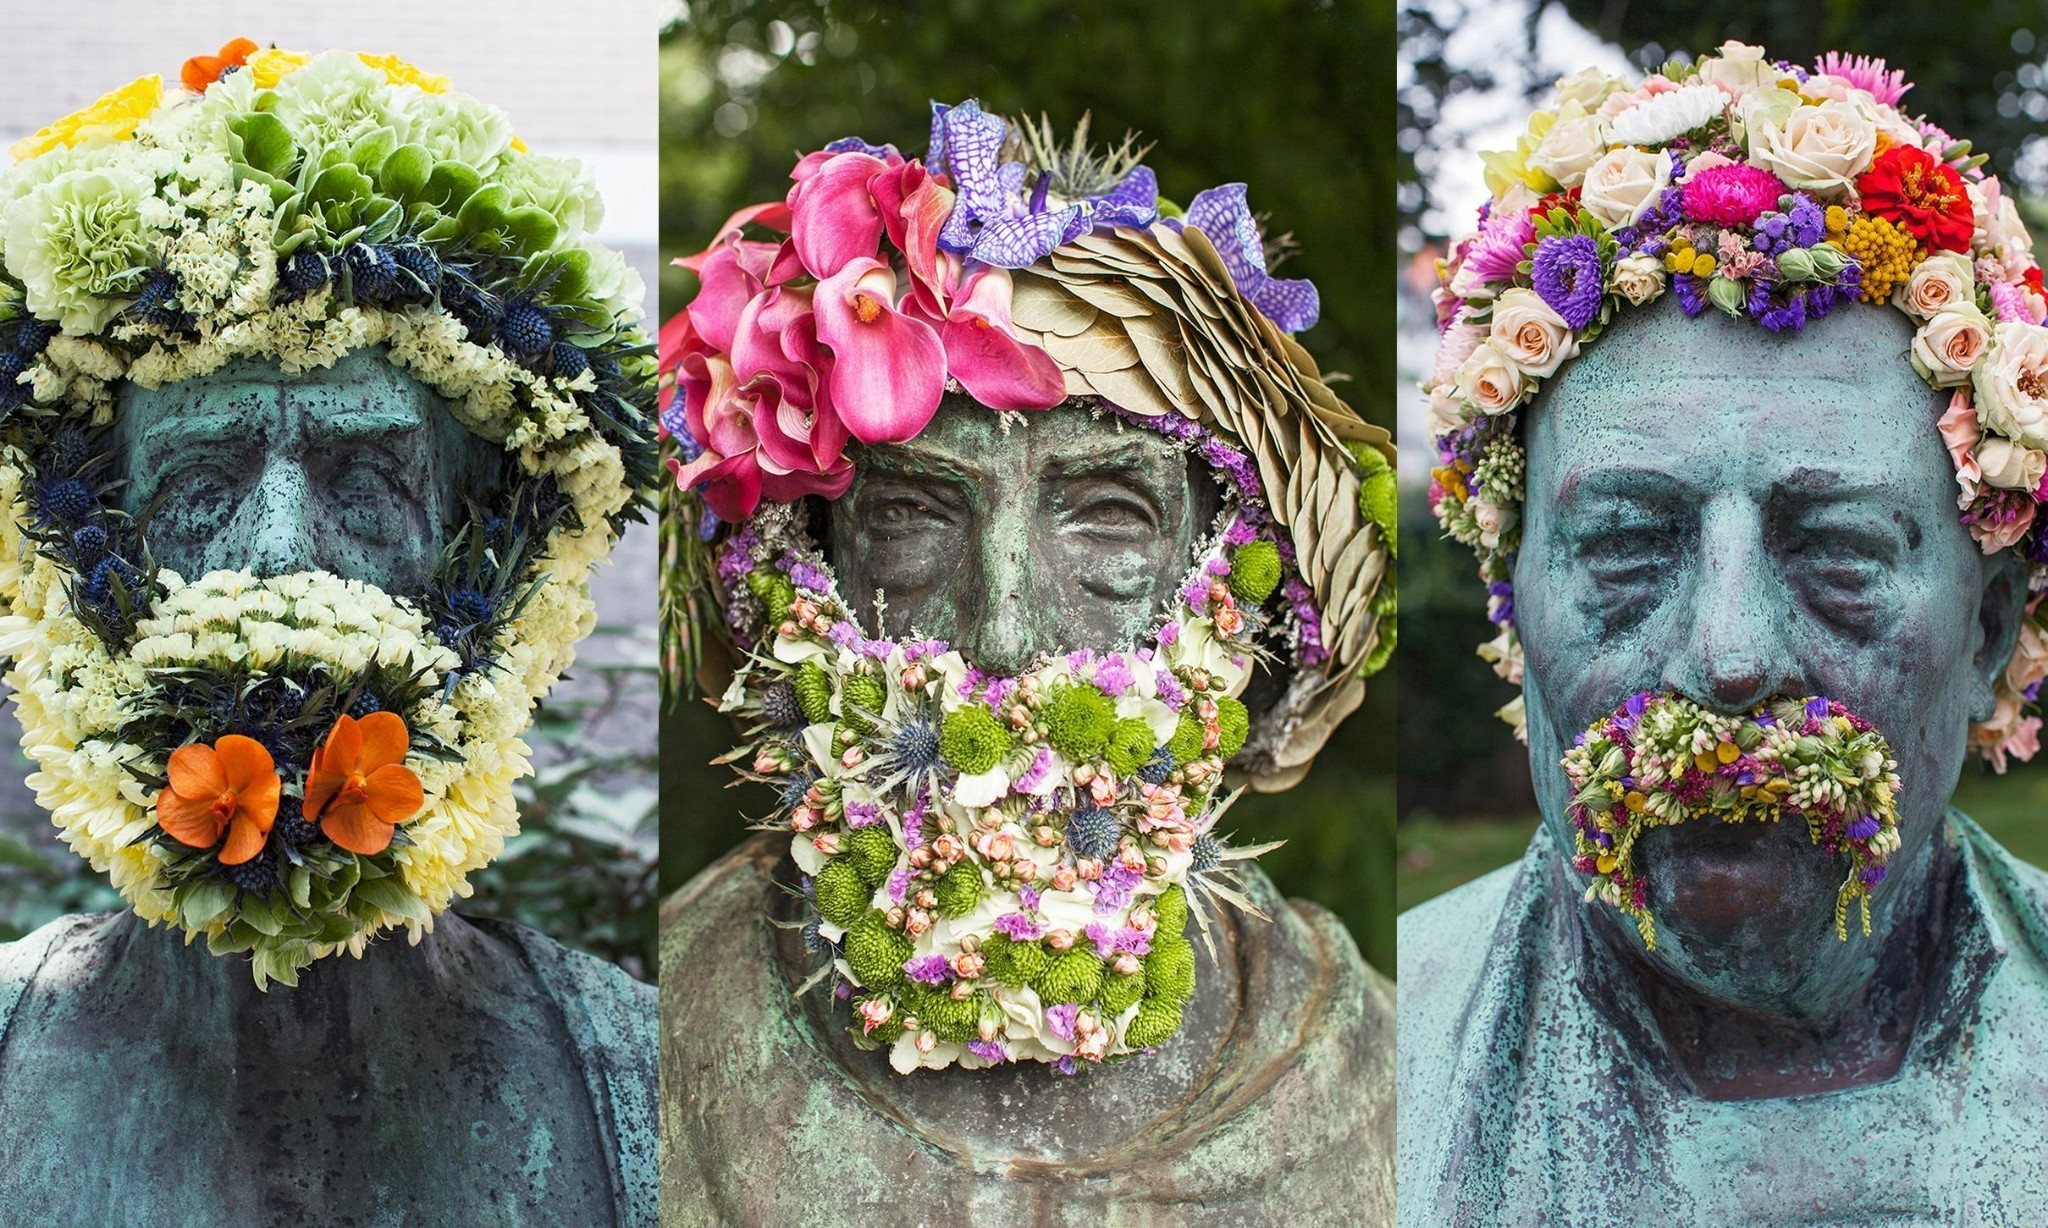 Floral fixation: blooming Belgian statues – in pictures